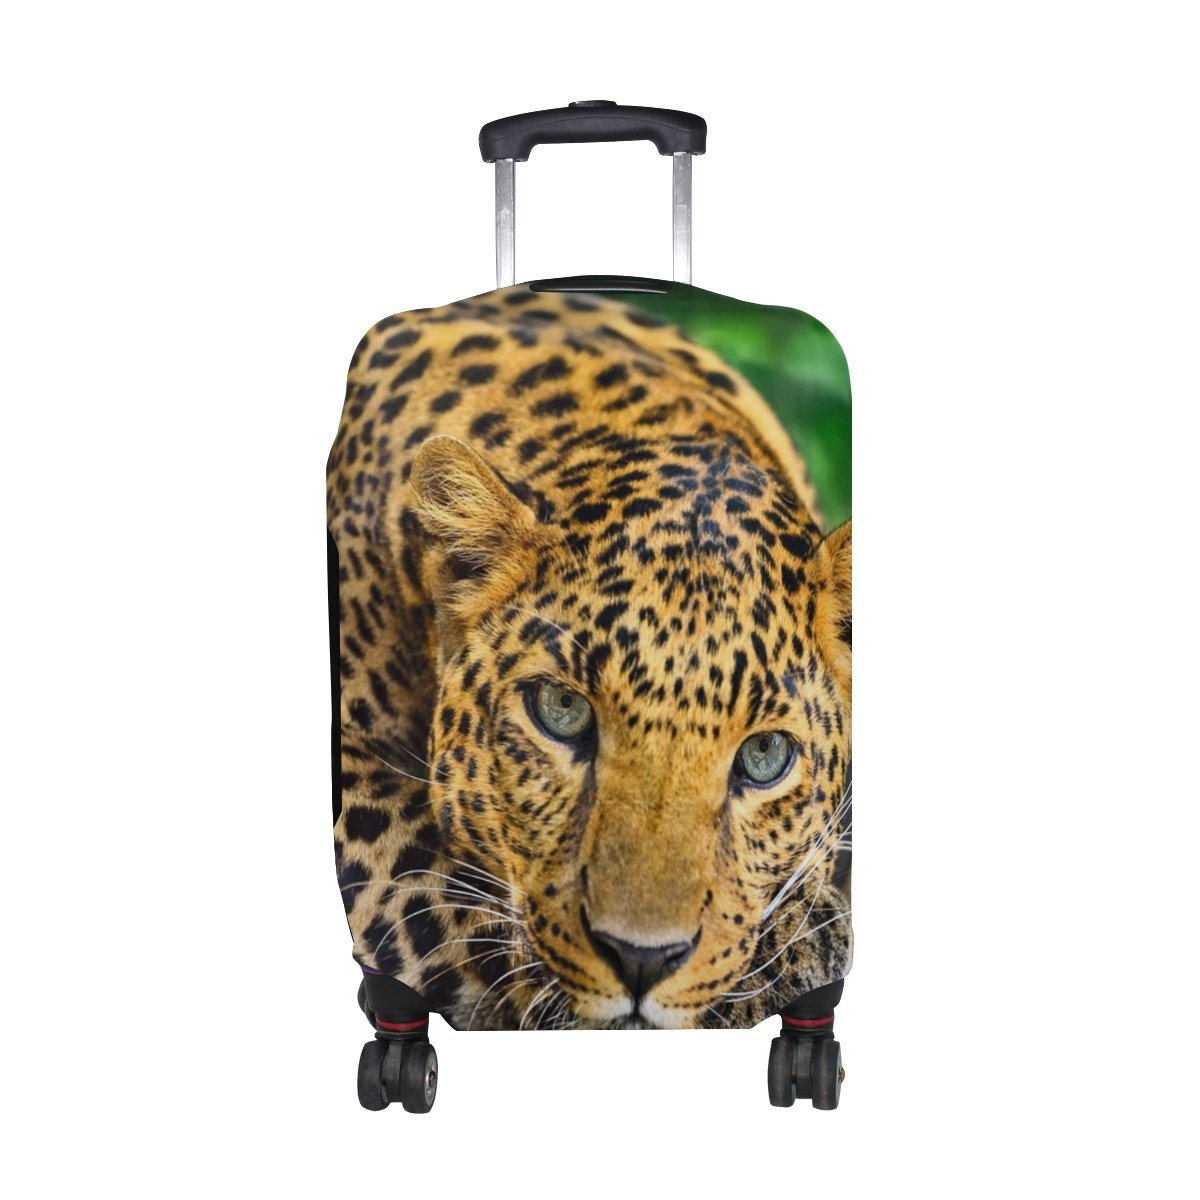 Leopard Pattern Print Luggage Cover Travel Suitcase Protector Fits 26-28 Inch Luggage